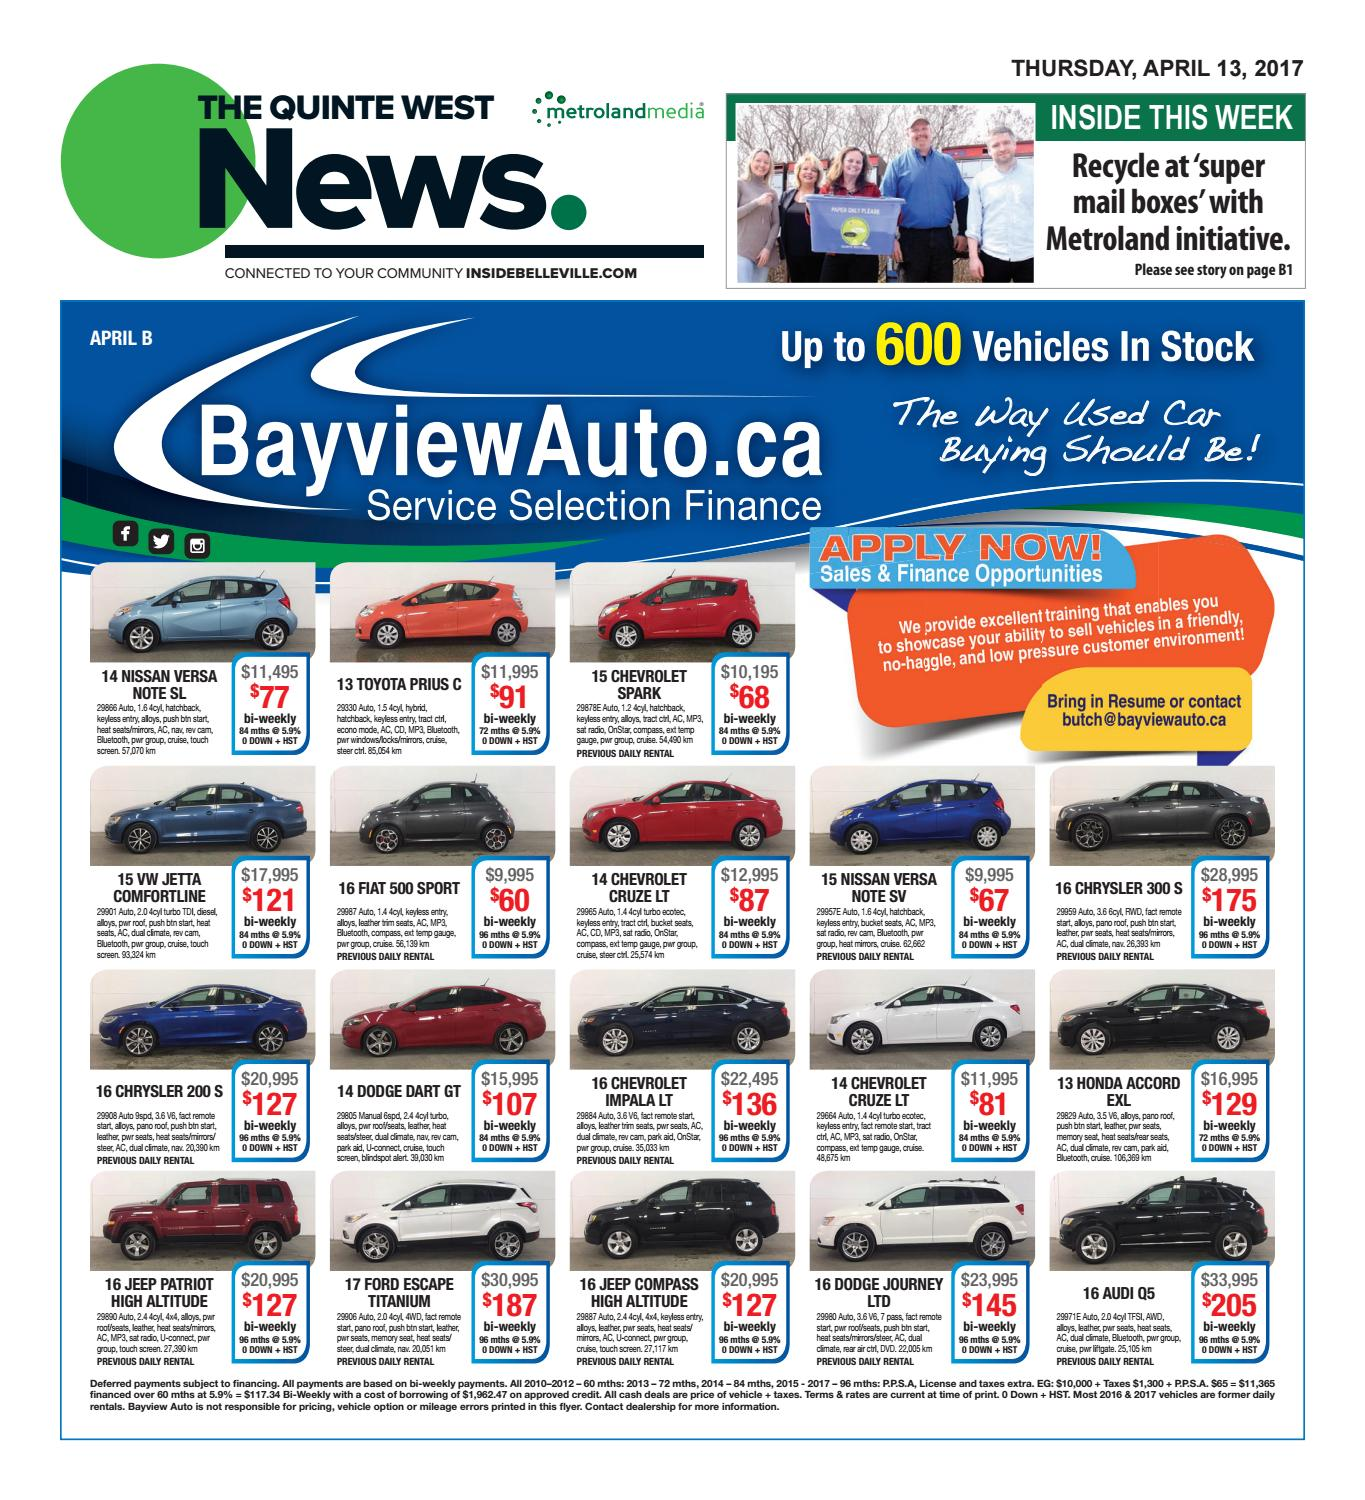 Quinte041317 by Metroland East - Quinte West News - issuu 6c3dca1d58ff6